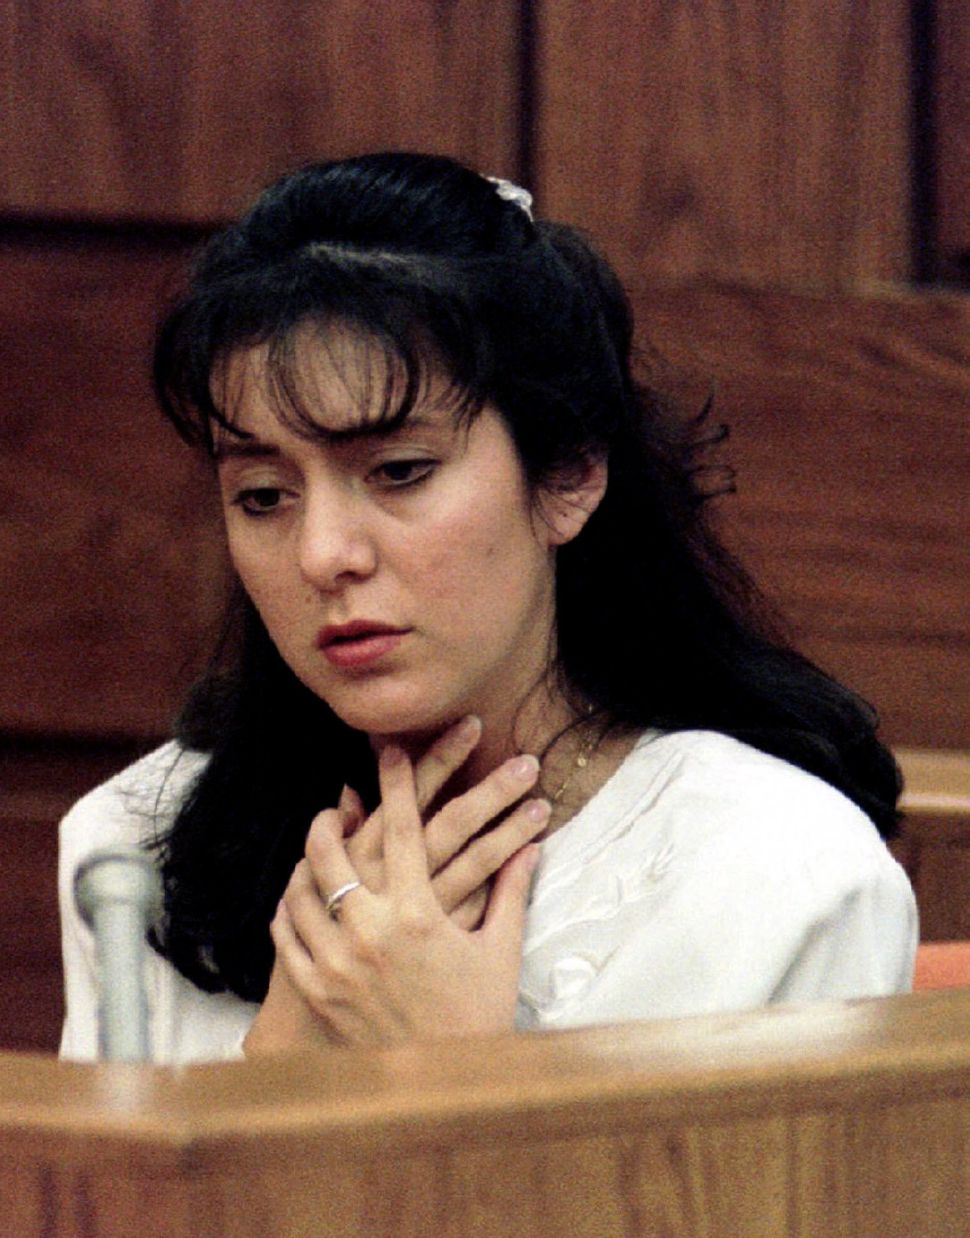 Bobbitt in court in Manassas, Virginia, in January 1994, describing how her husband choked her.